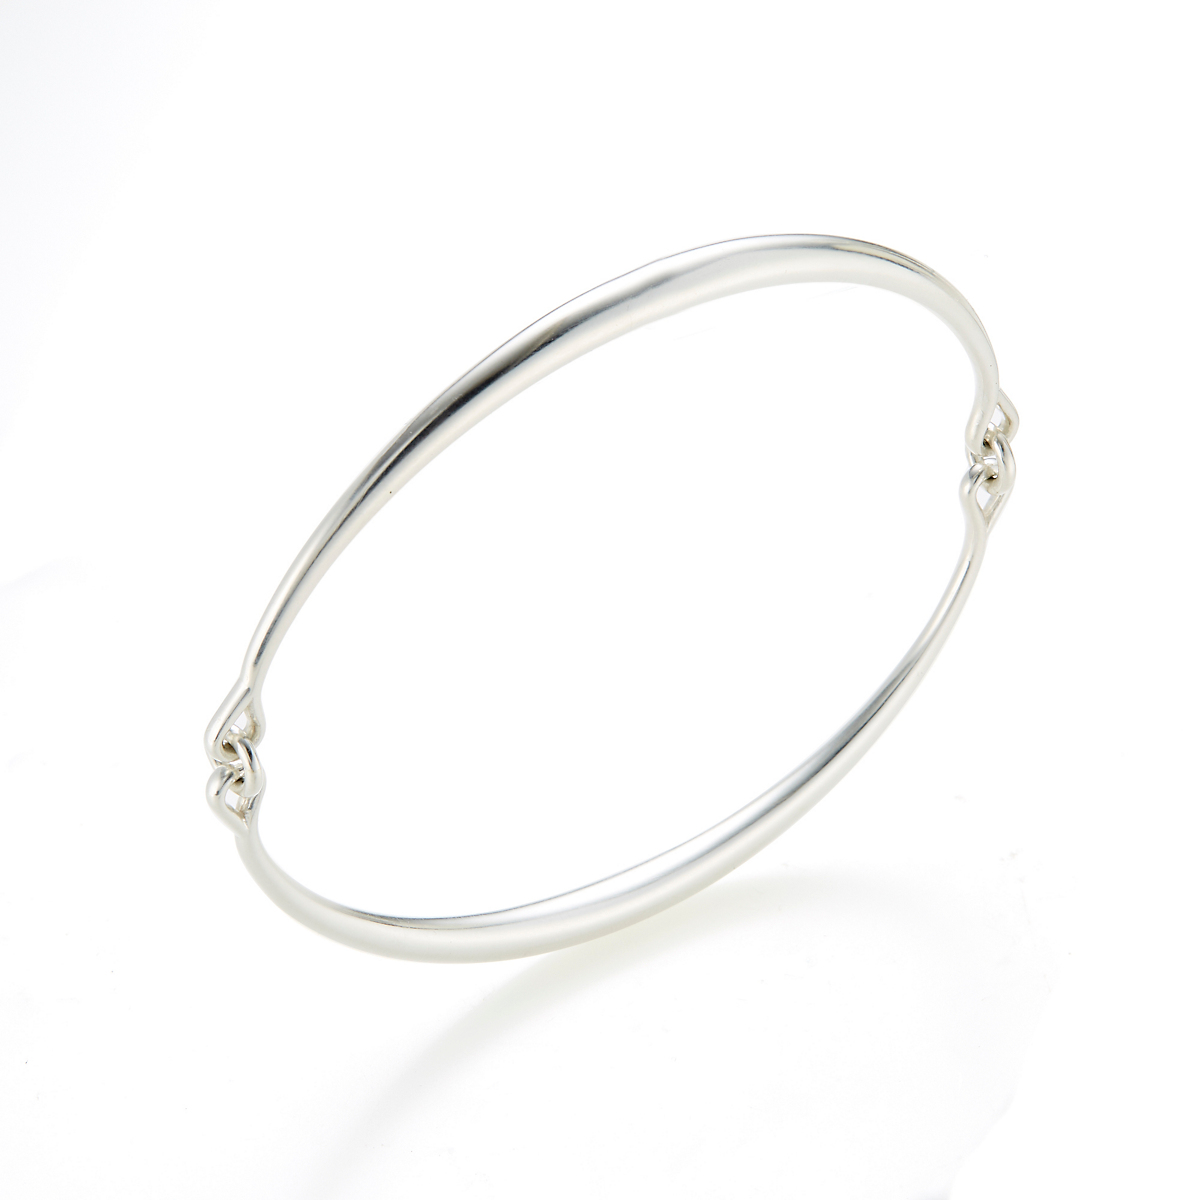 Georg Jensen Astrid Large Silver Bangle